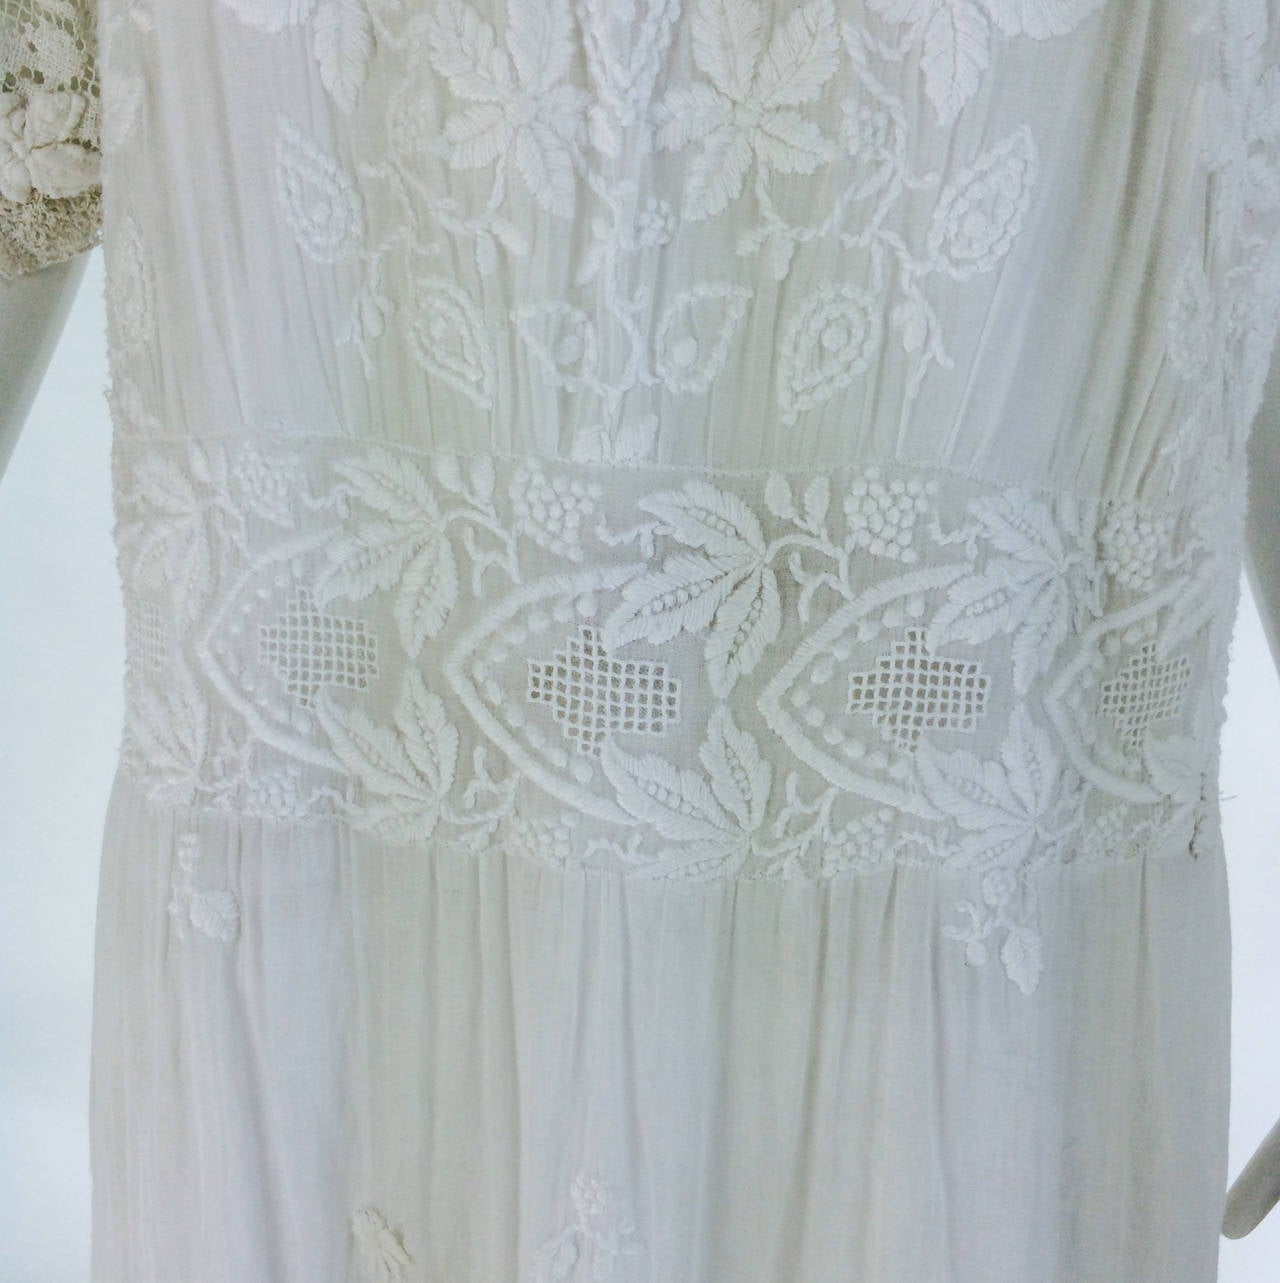 Edwardian embroidered white batiste & handmade lace dress 8